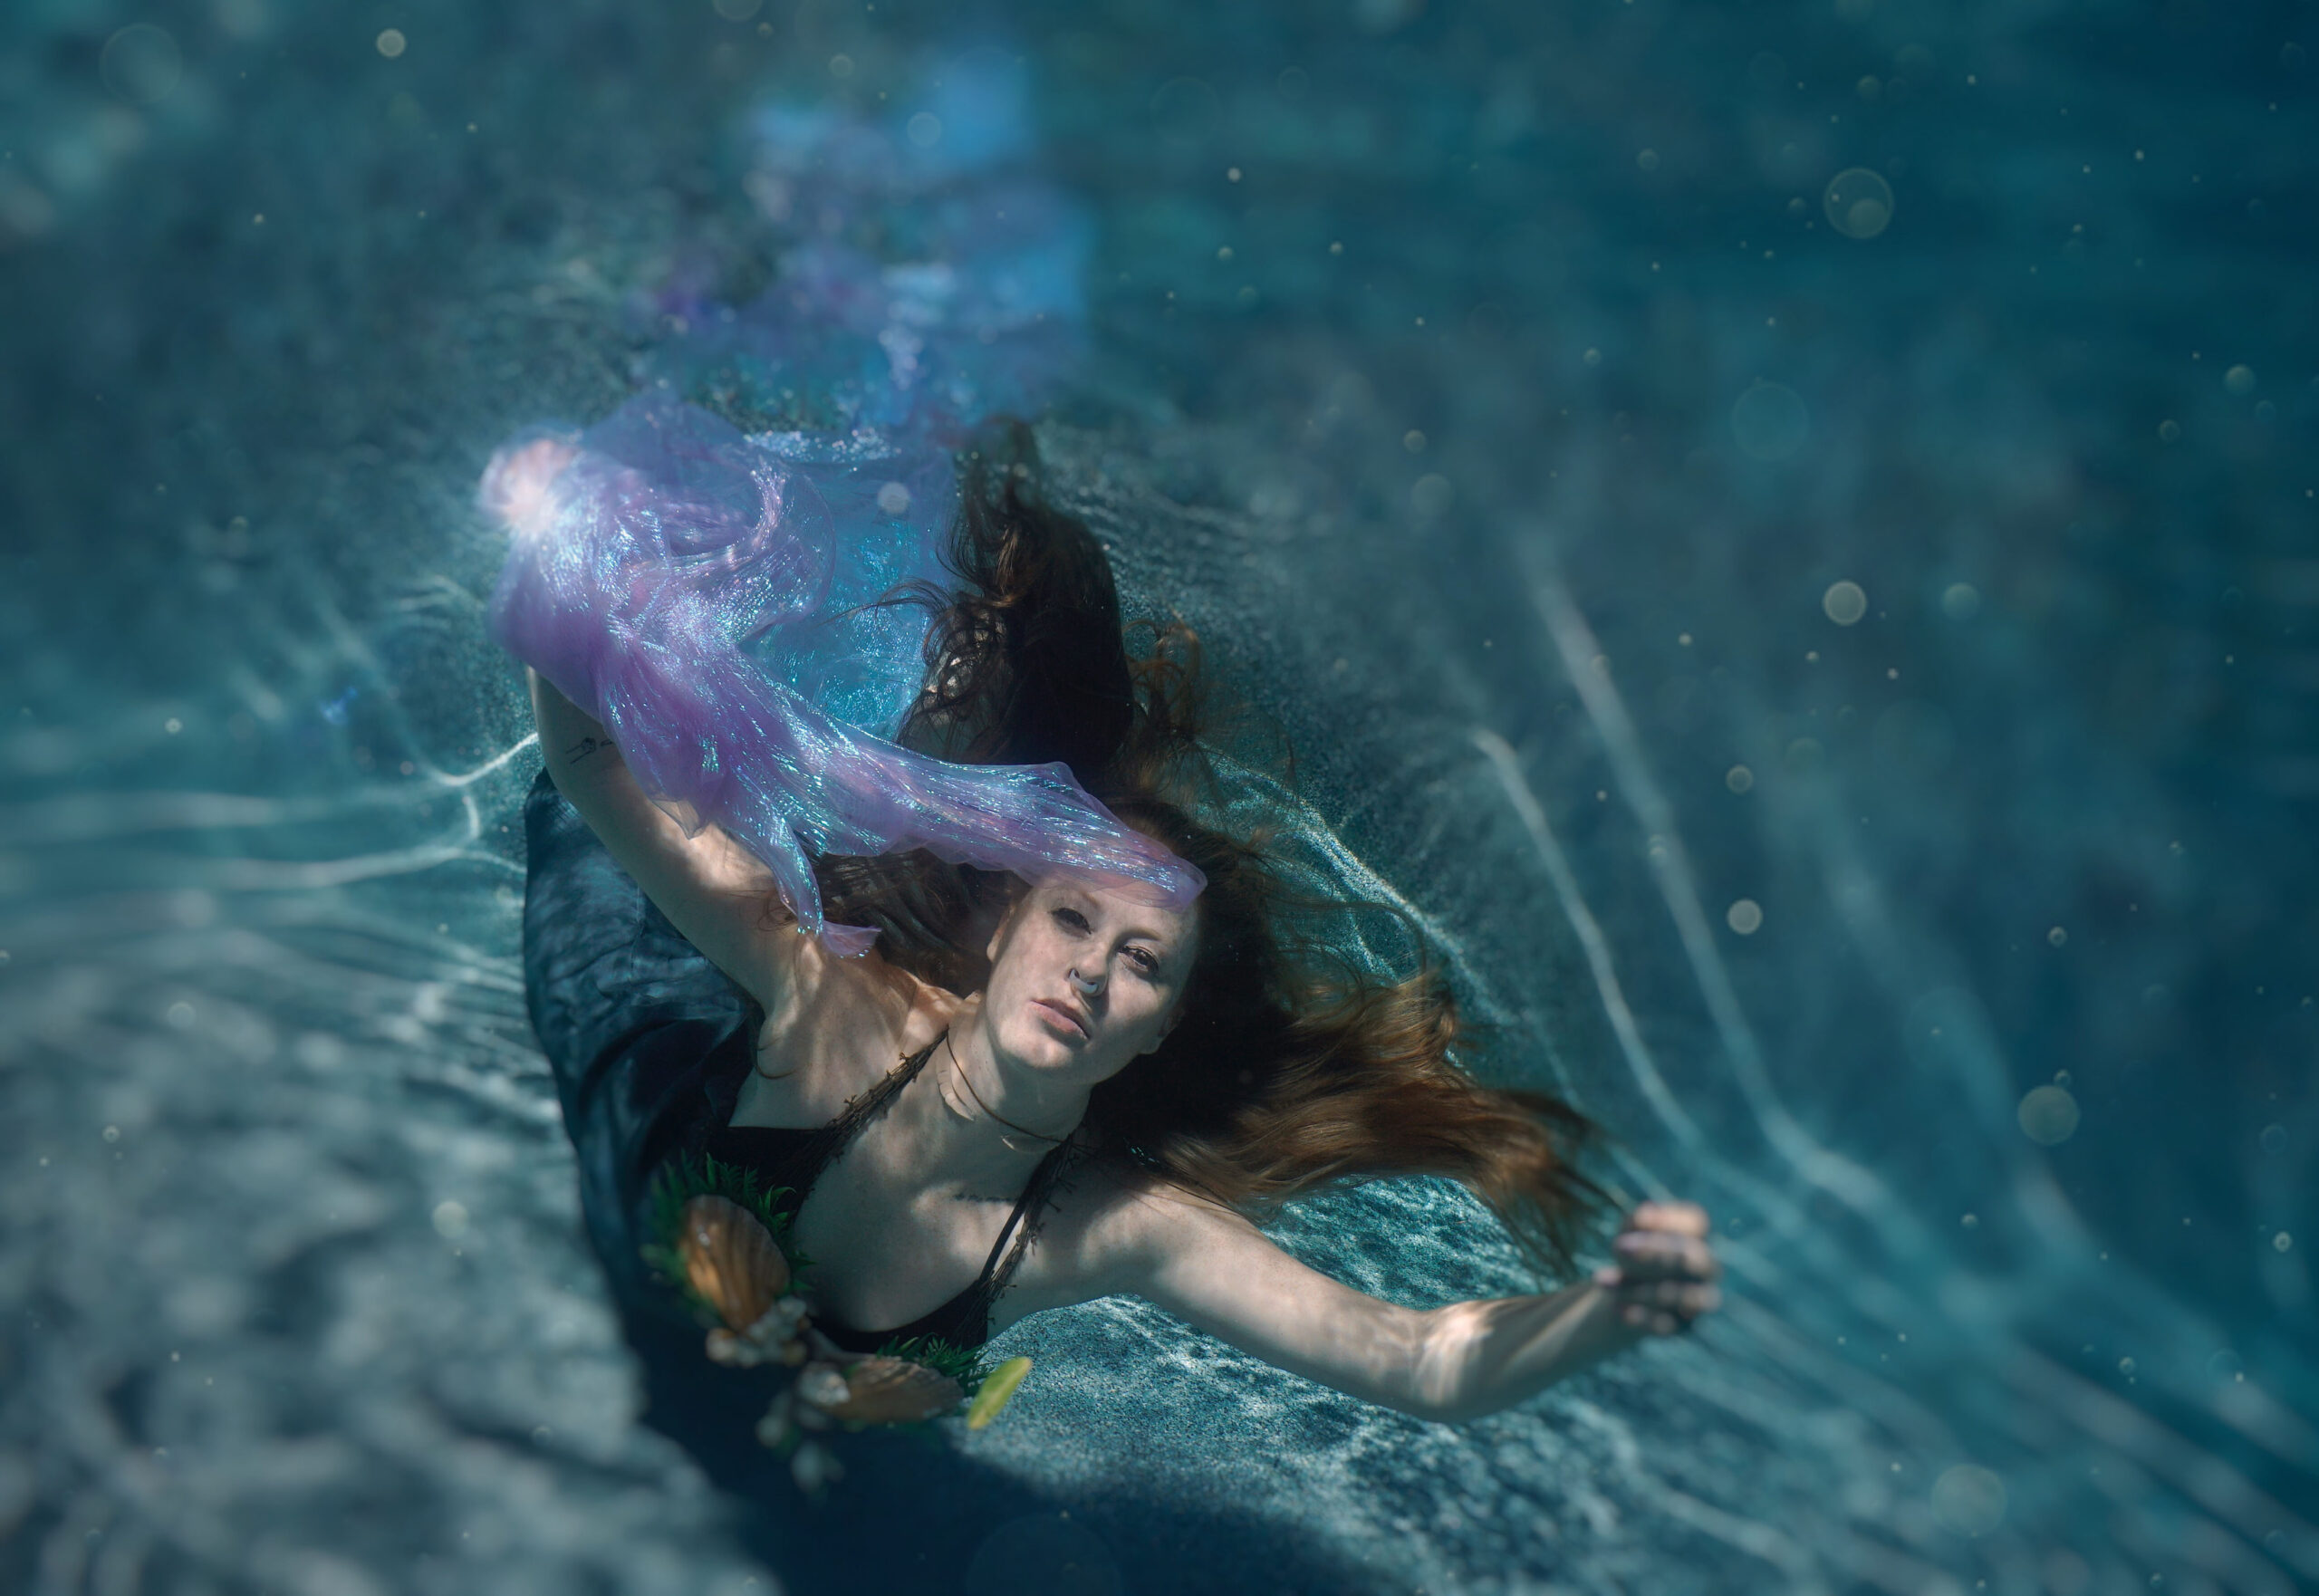 photo of a woman underwater wearing a mermaid costume and holding a purple scarf